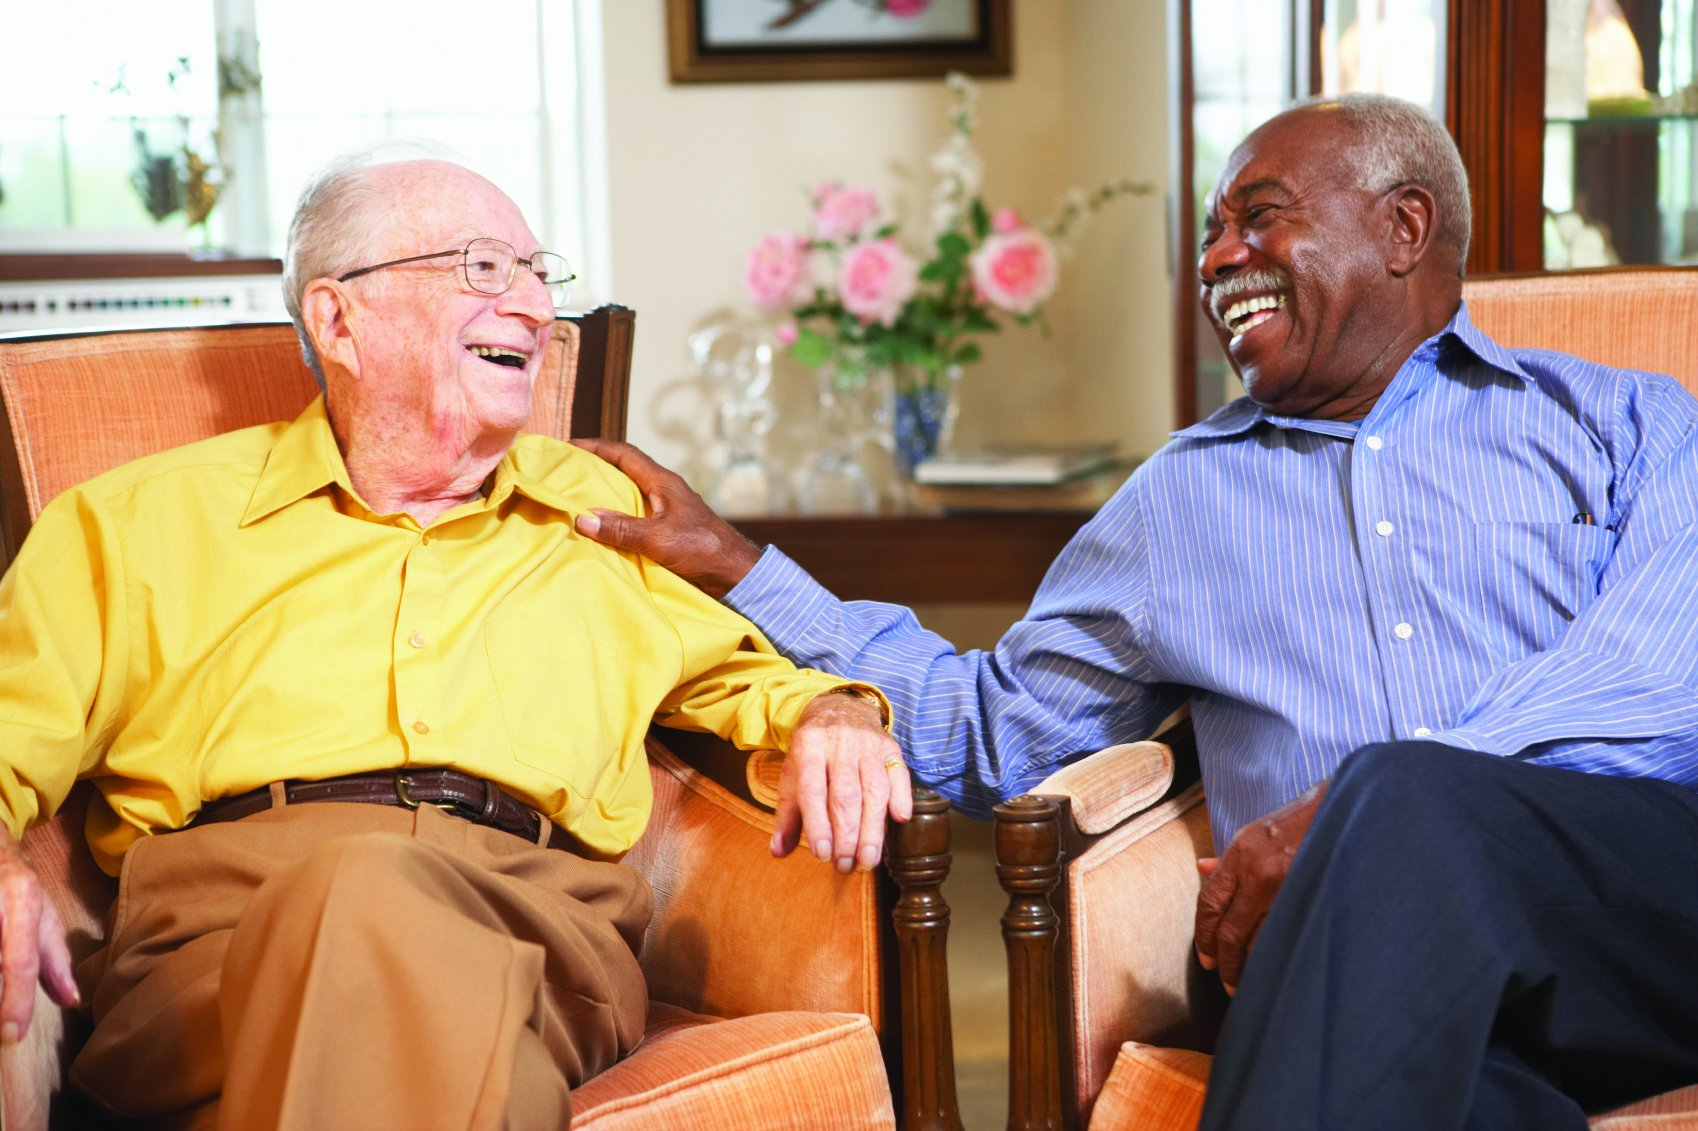 Two senior men laughing